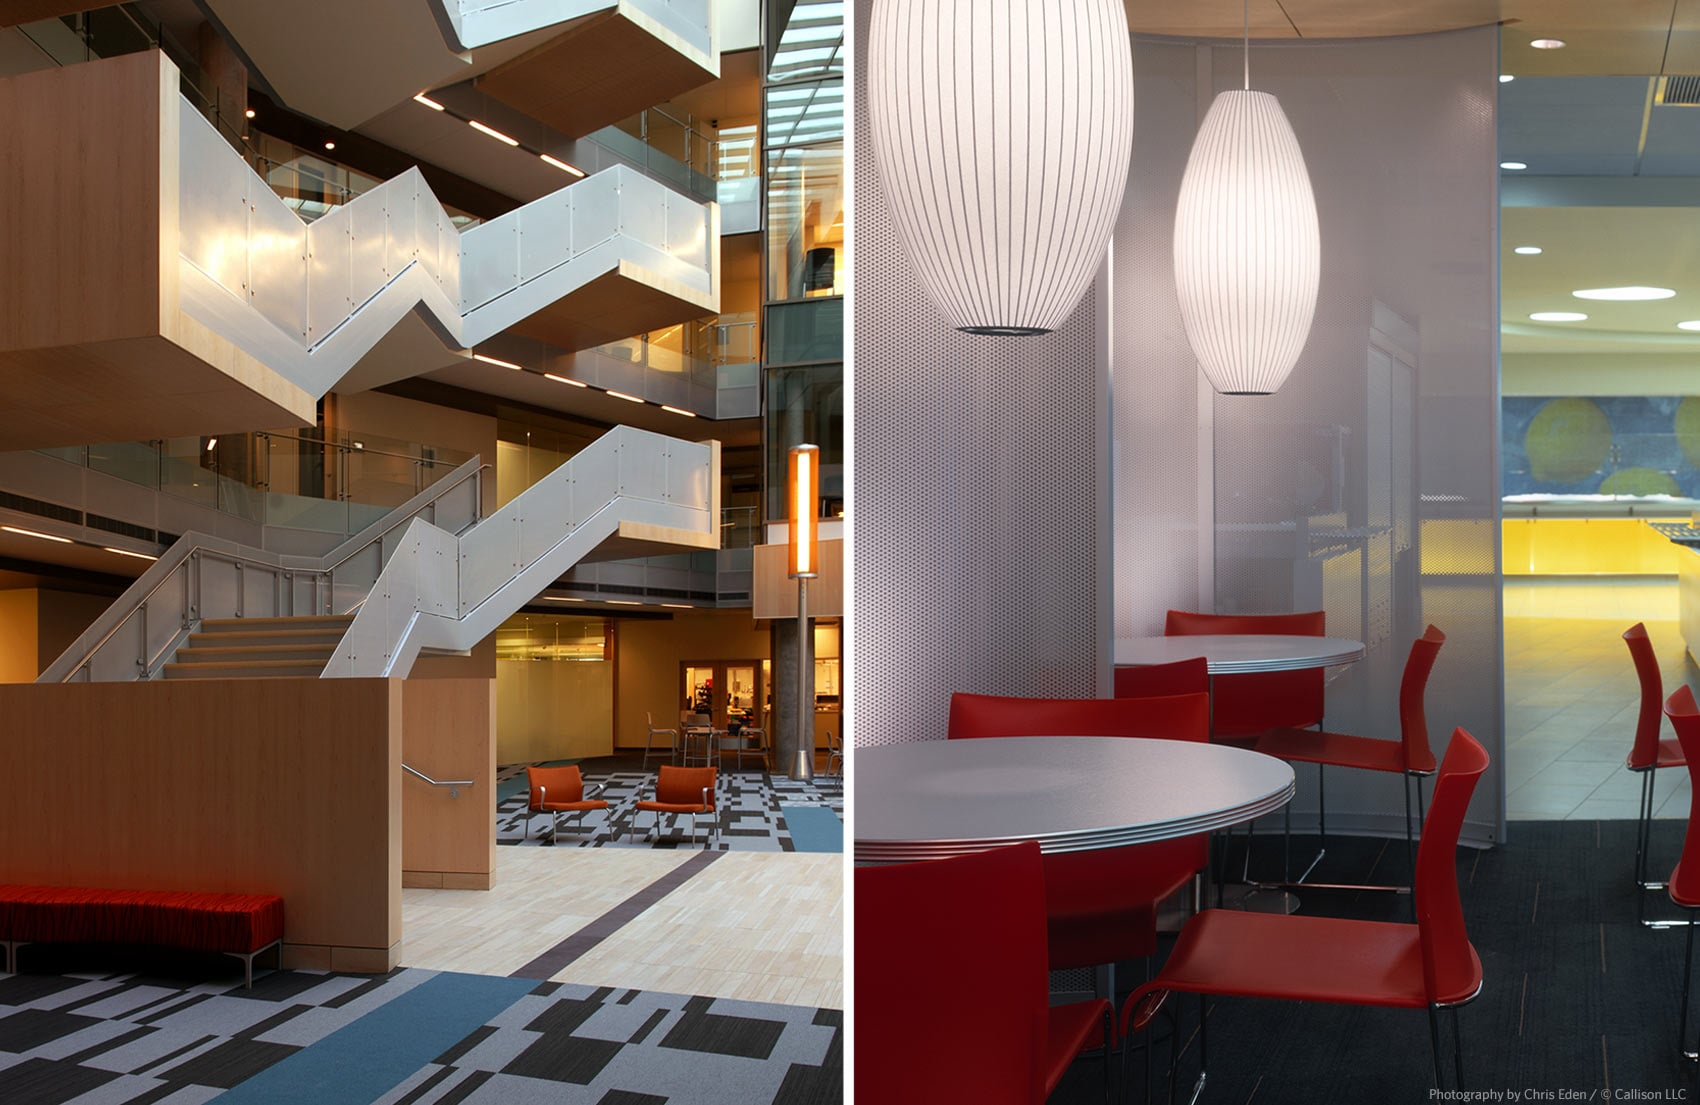 Software Company HQ - Lobby and office interior